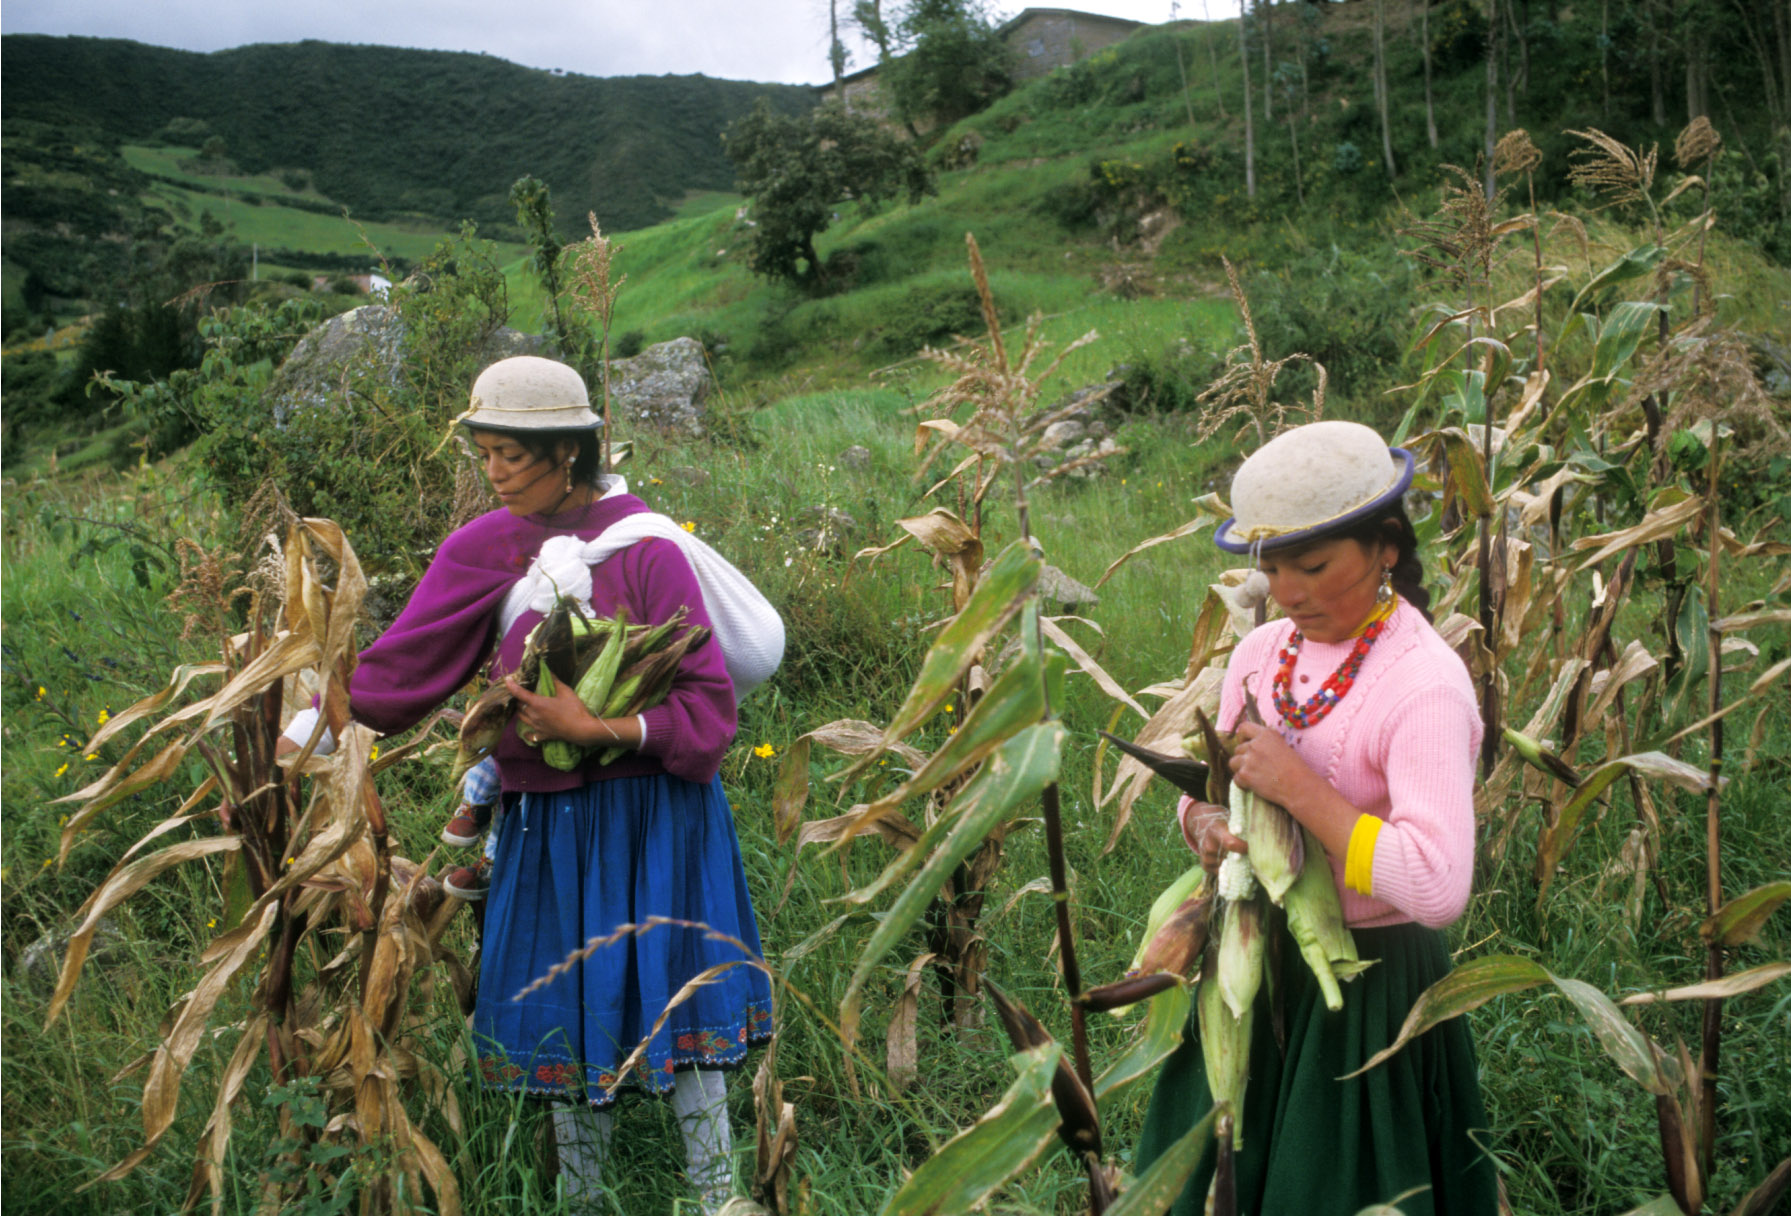 Women's land ownership and decision-making